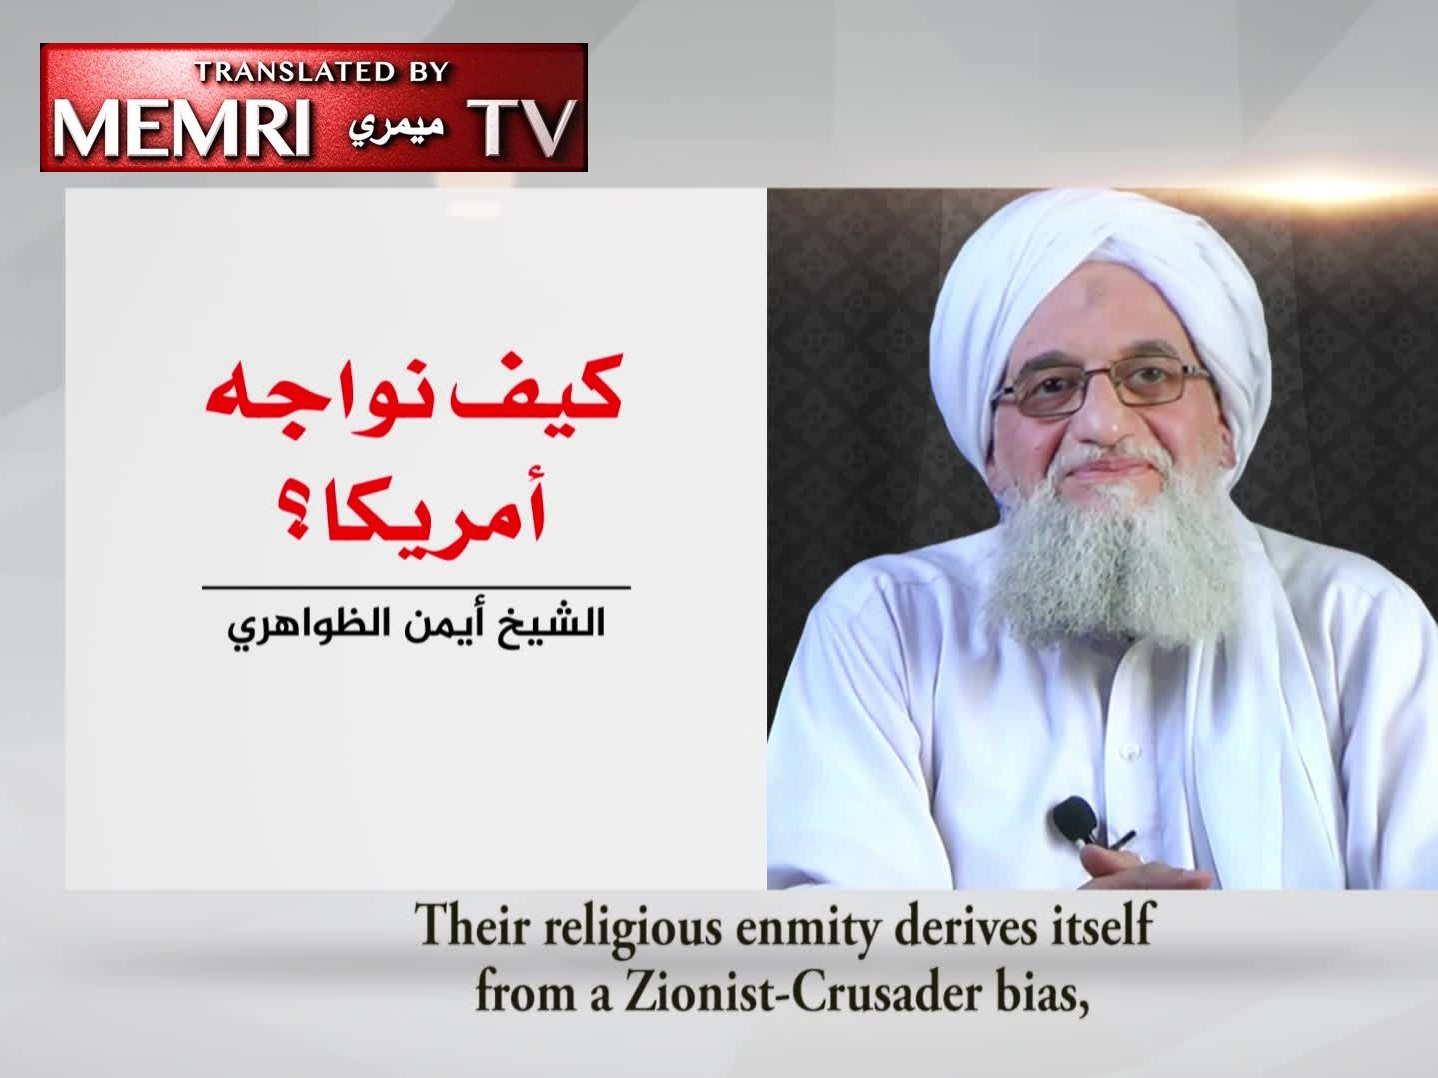 On 17th Anniversary of 9/11, Al-Qaeda Leader Ayman Al-‎Zawahiri Calls upon Muslims to Unite in Battle against ‎U.S. to